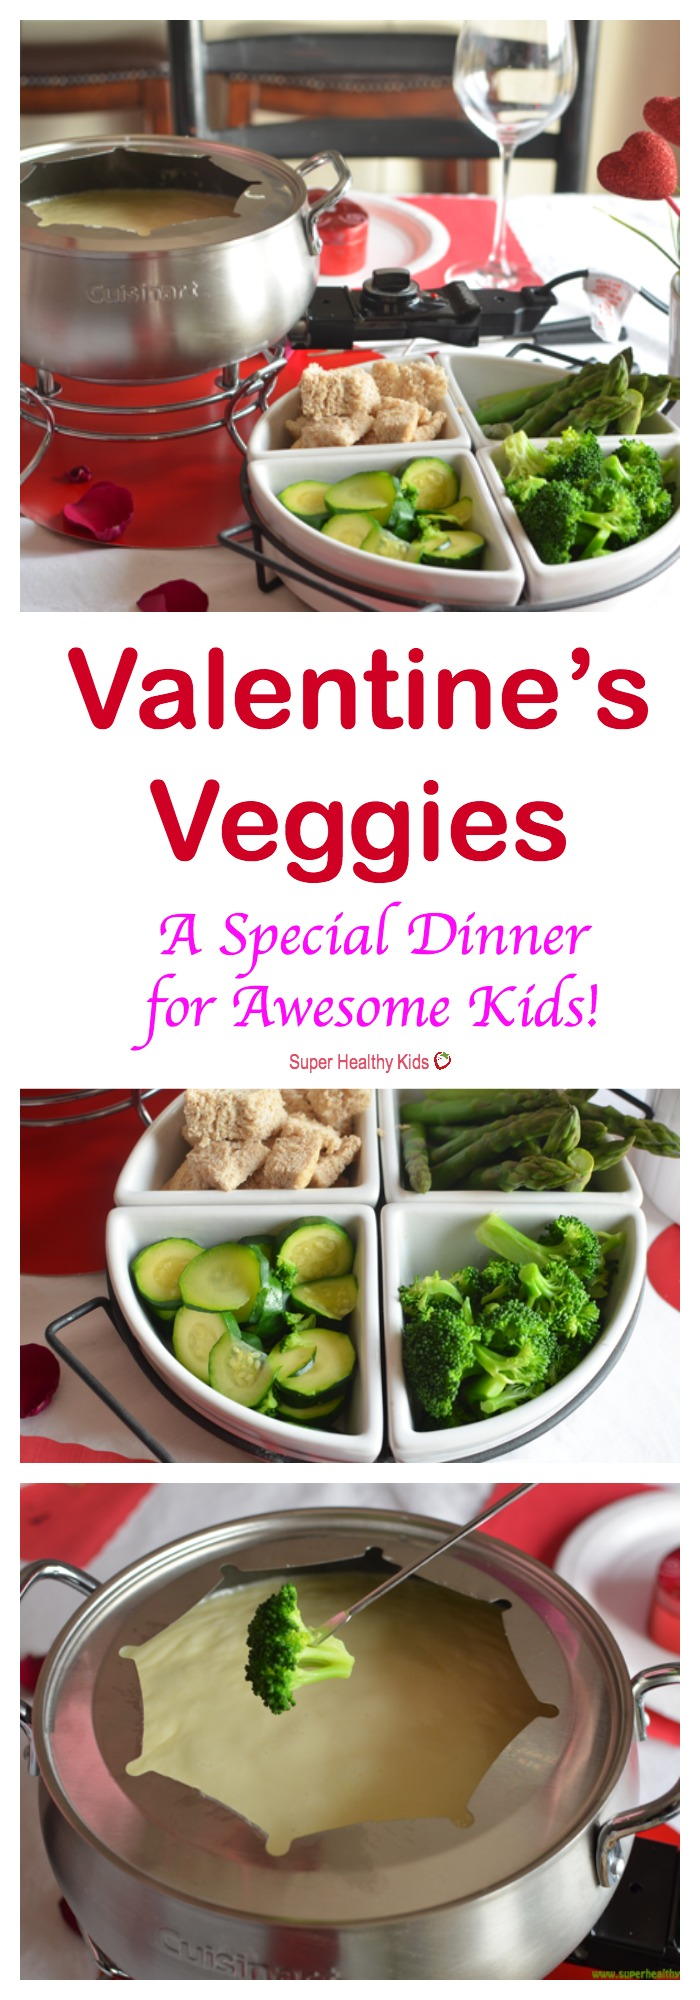 FOOD - Valentine's Veggies- Special Dinner for Awesome Kids. A fun dinner to celebrate Valentine's day with the family! http://www.superhealthykids.com/valentines-veggies-special-dinner-for-awesome-kids/